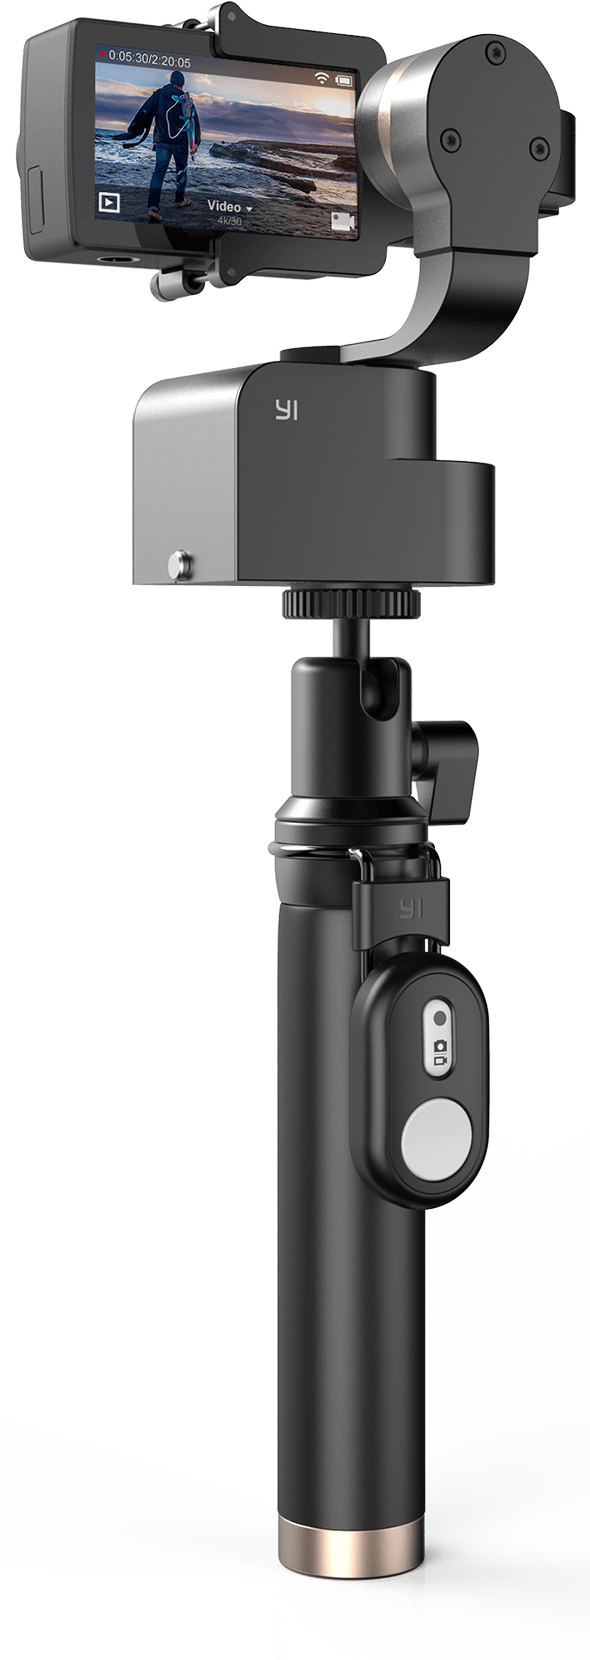 Yi Handheld Gimbal for GoPro